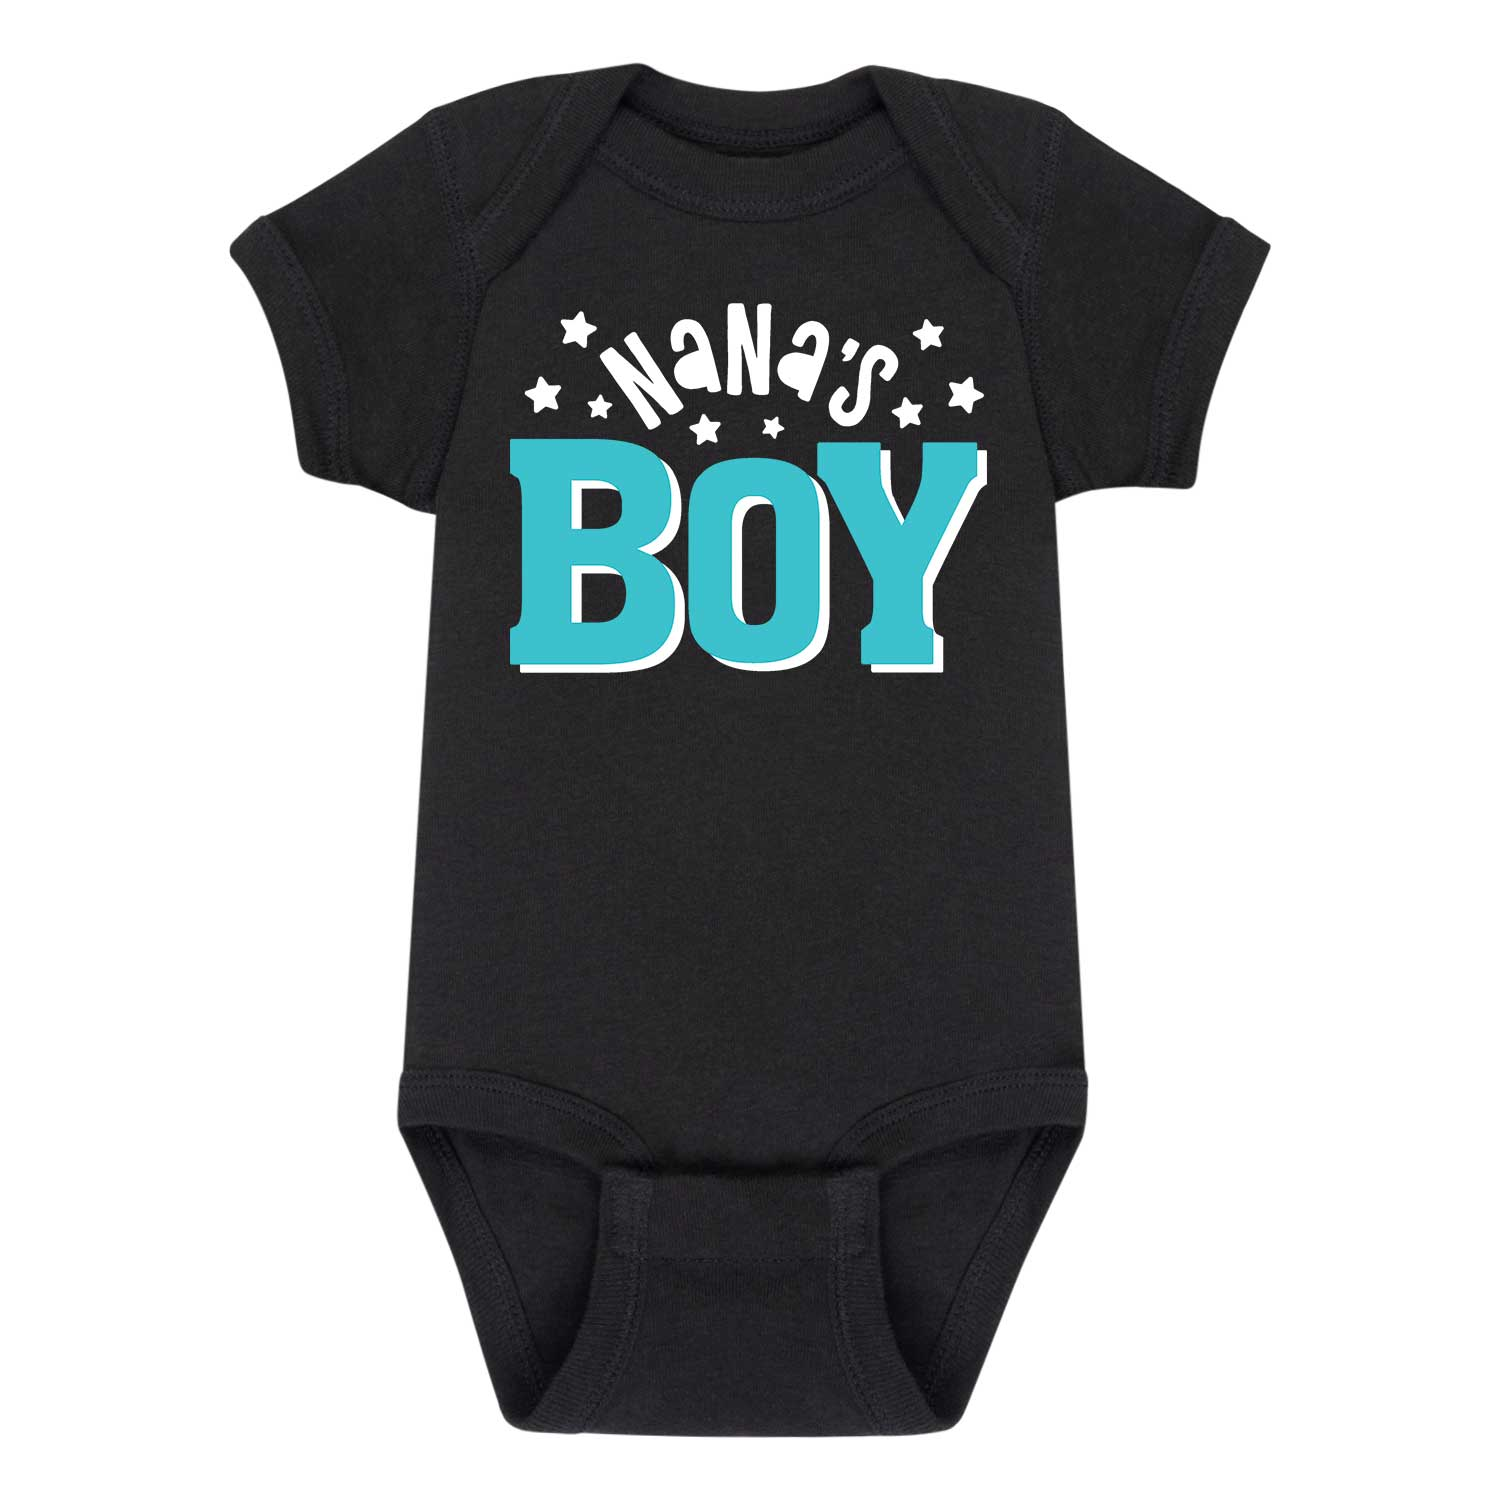 Nana's Boy - Infant One Piece